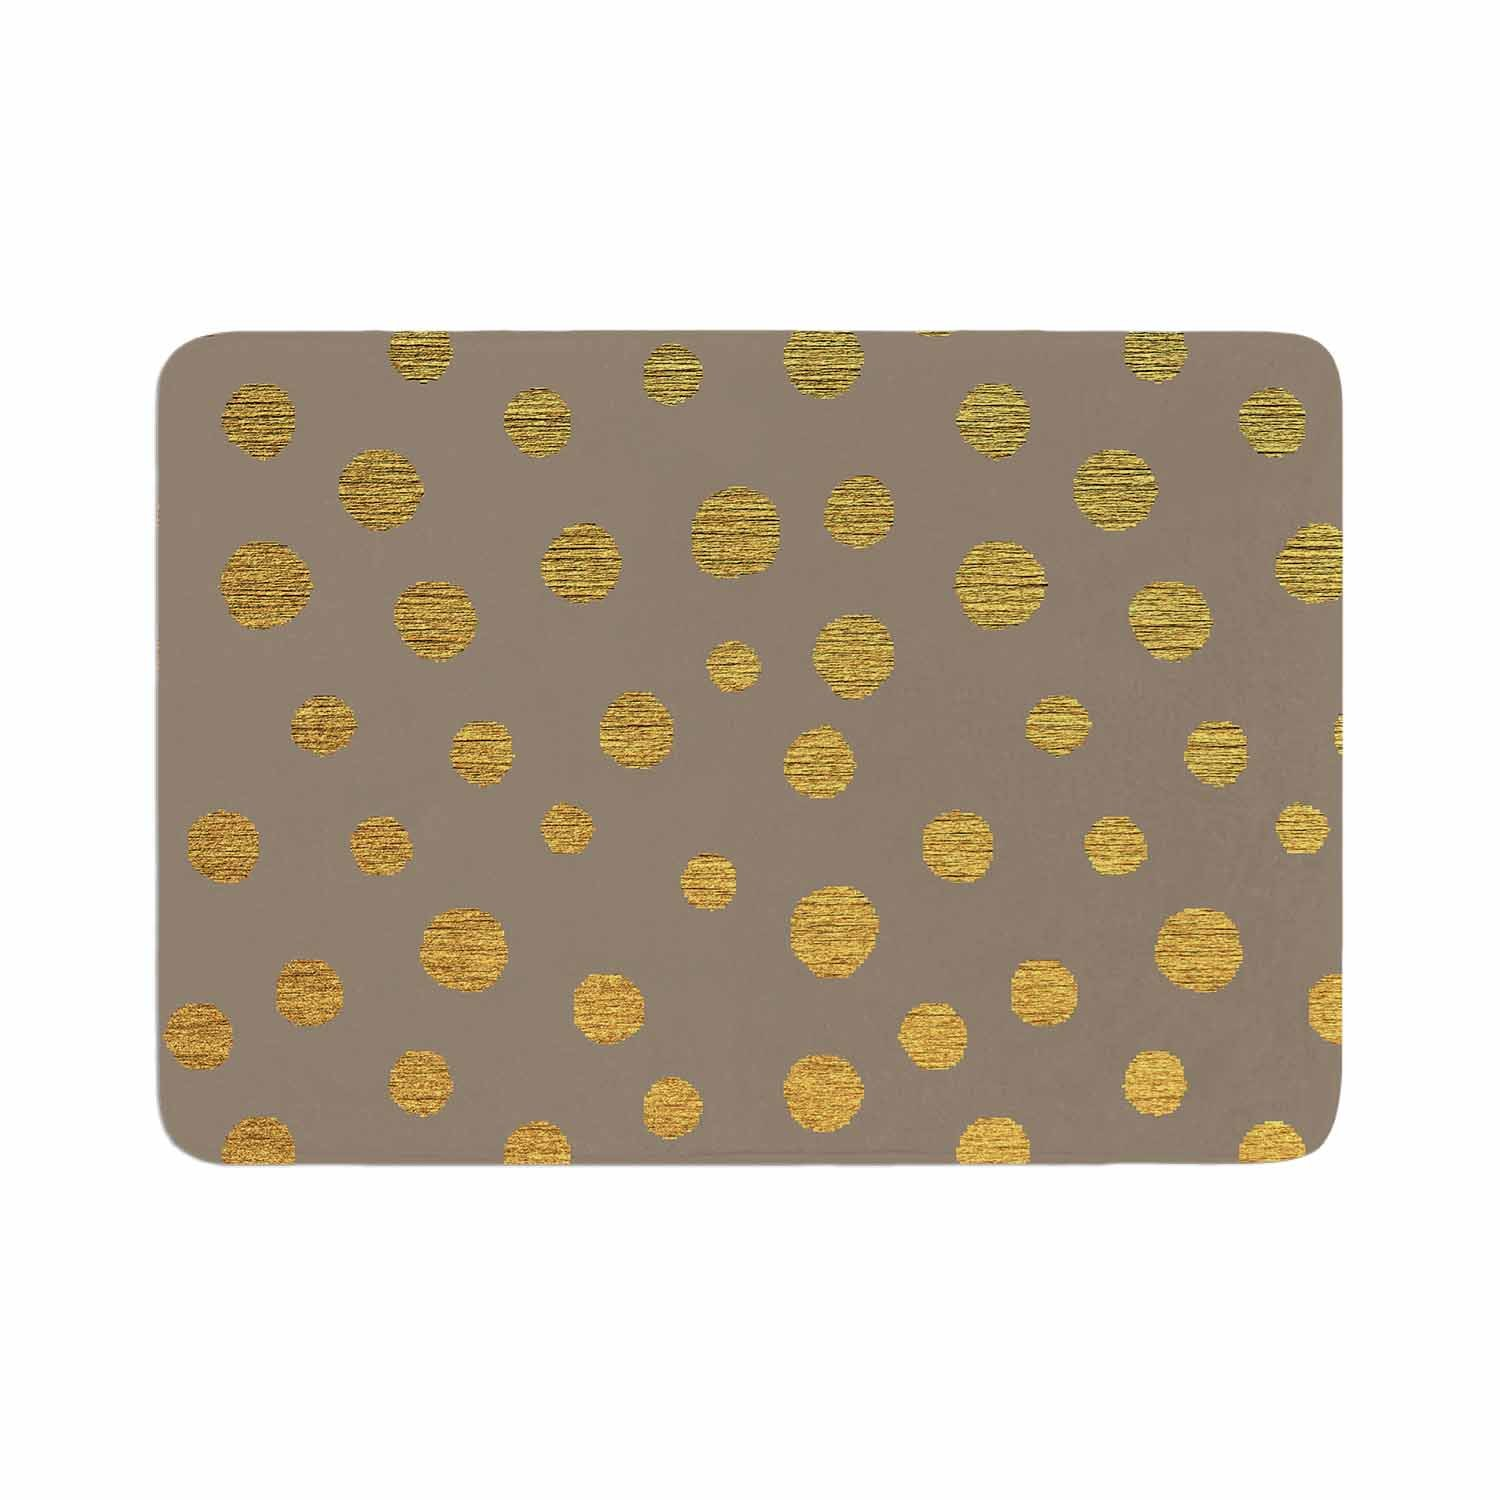 Kess InHouse Nika Martinez Earth Golden Dots Brown Yellow Memory Foam/ Bath Mat 17 by 24